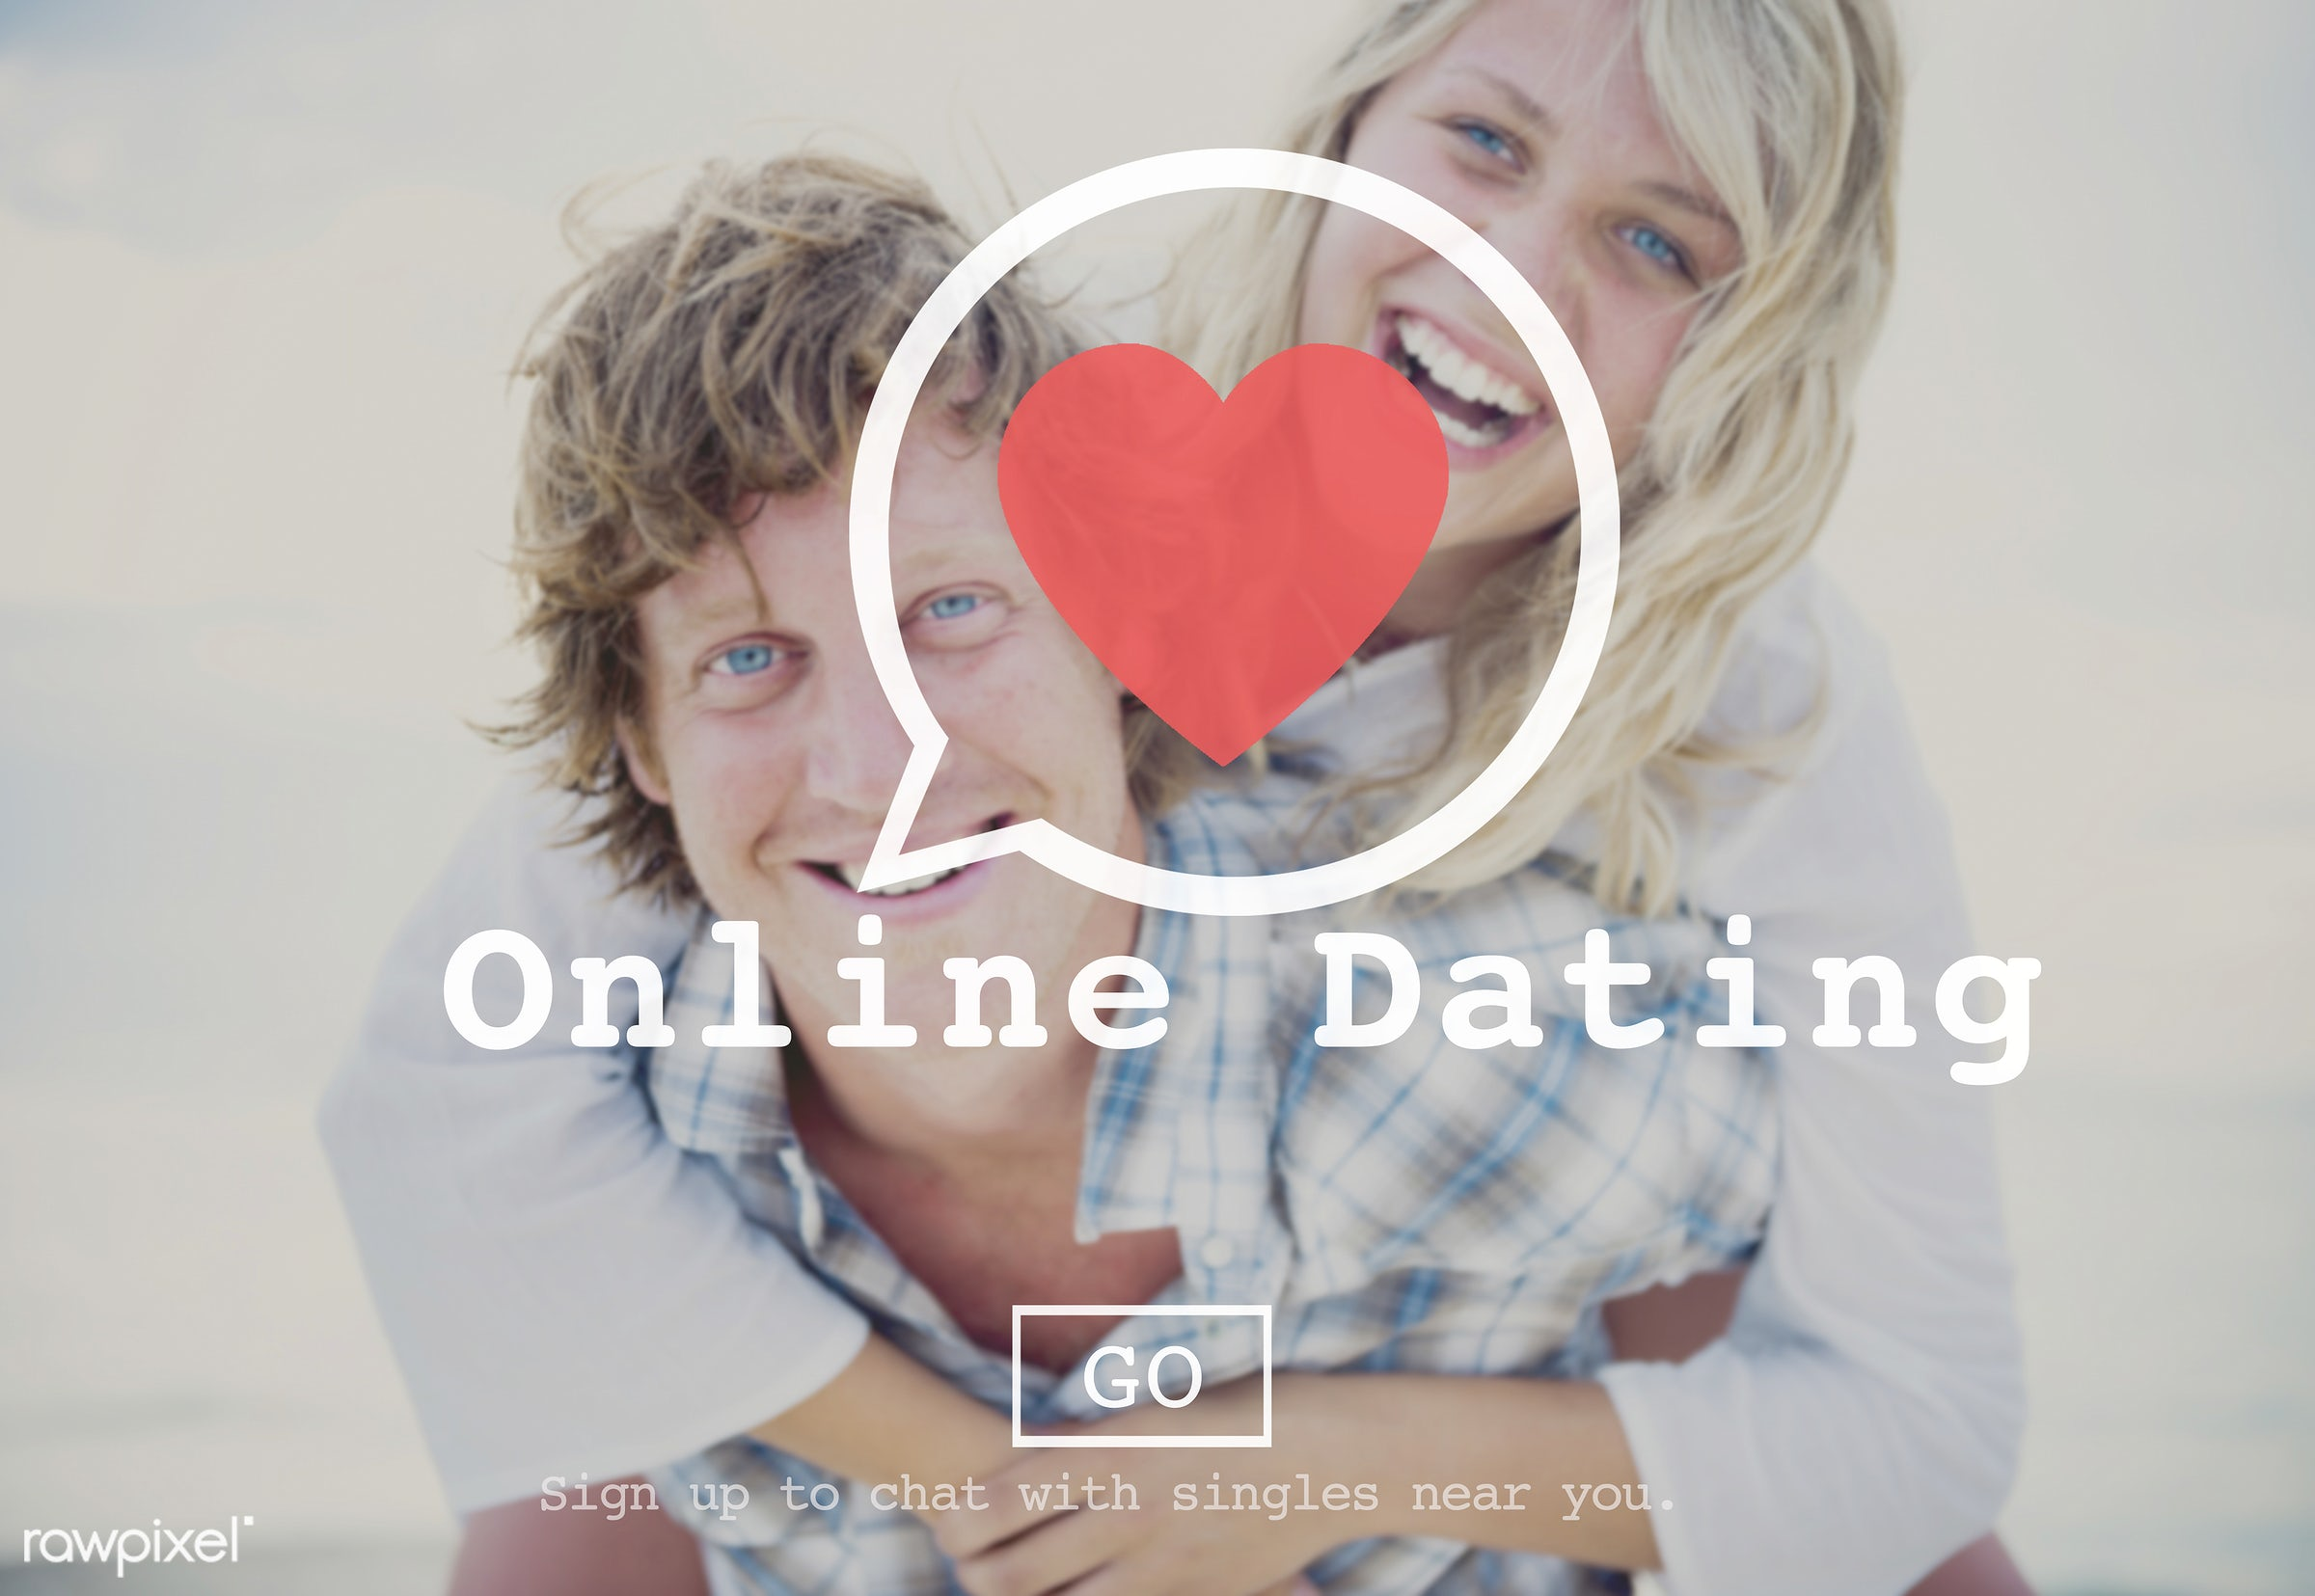 romance, beach, bonding, carrying, cheerful, communication, connect, couple, court, dating, freedom, go steady, happiness,...